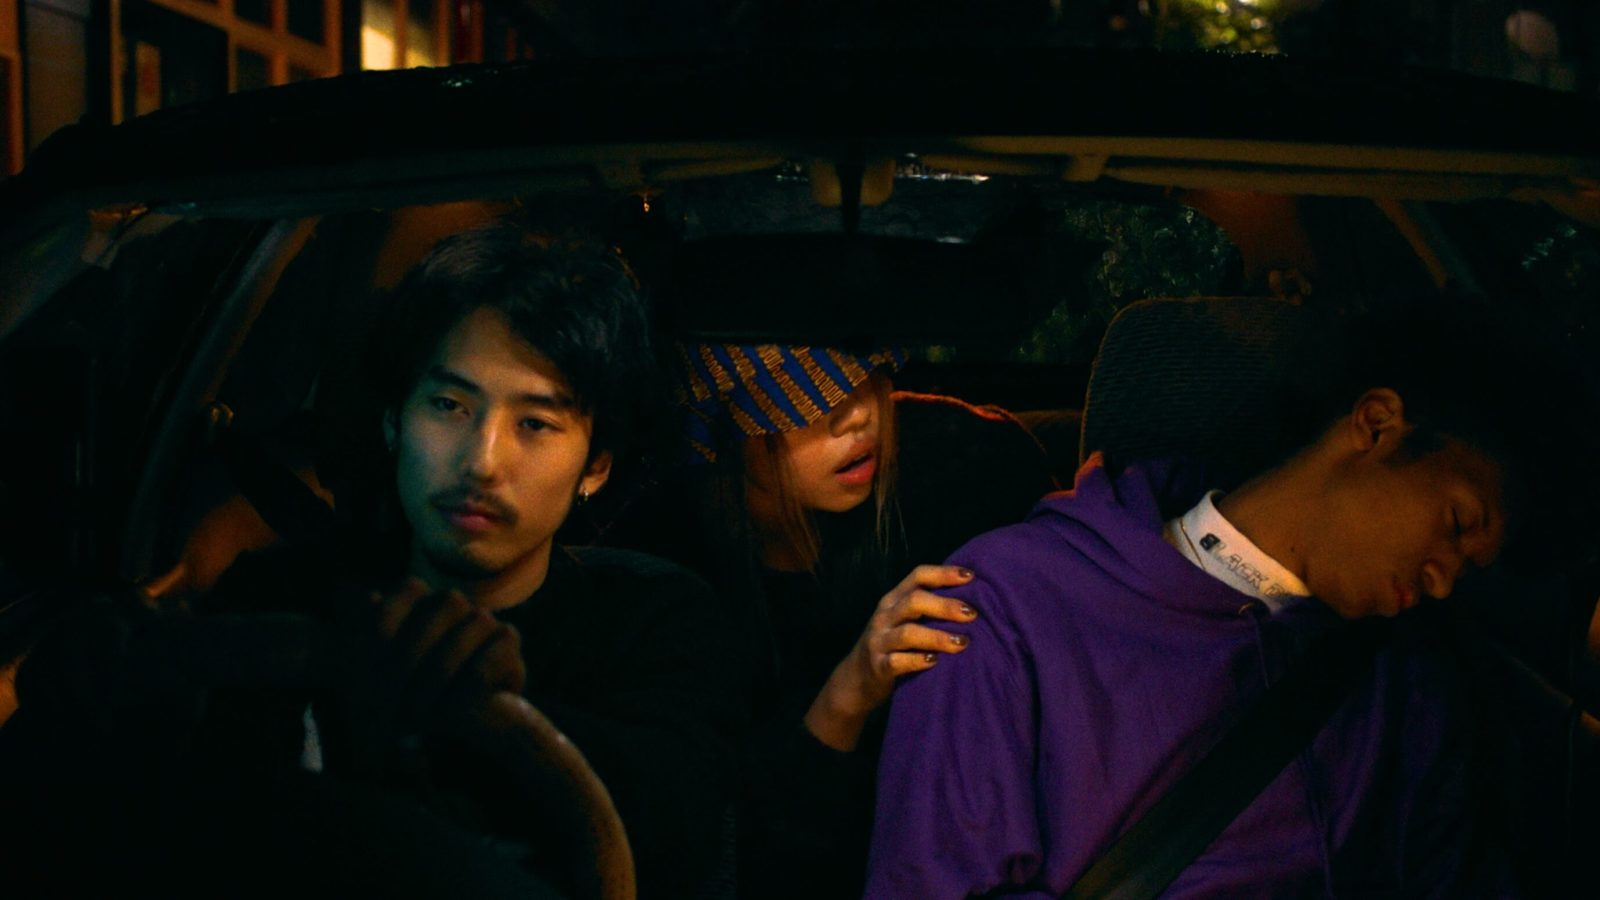 Friday Night Plans、Honda「VEZEL」CMソング「HONDA」のMusic Video公開サムネイル画像